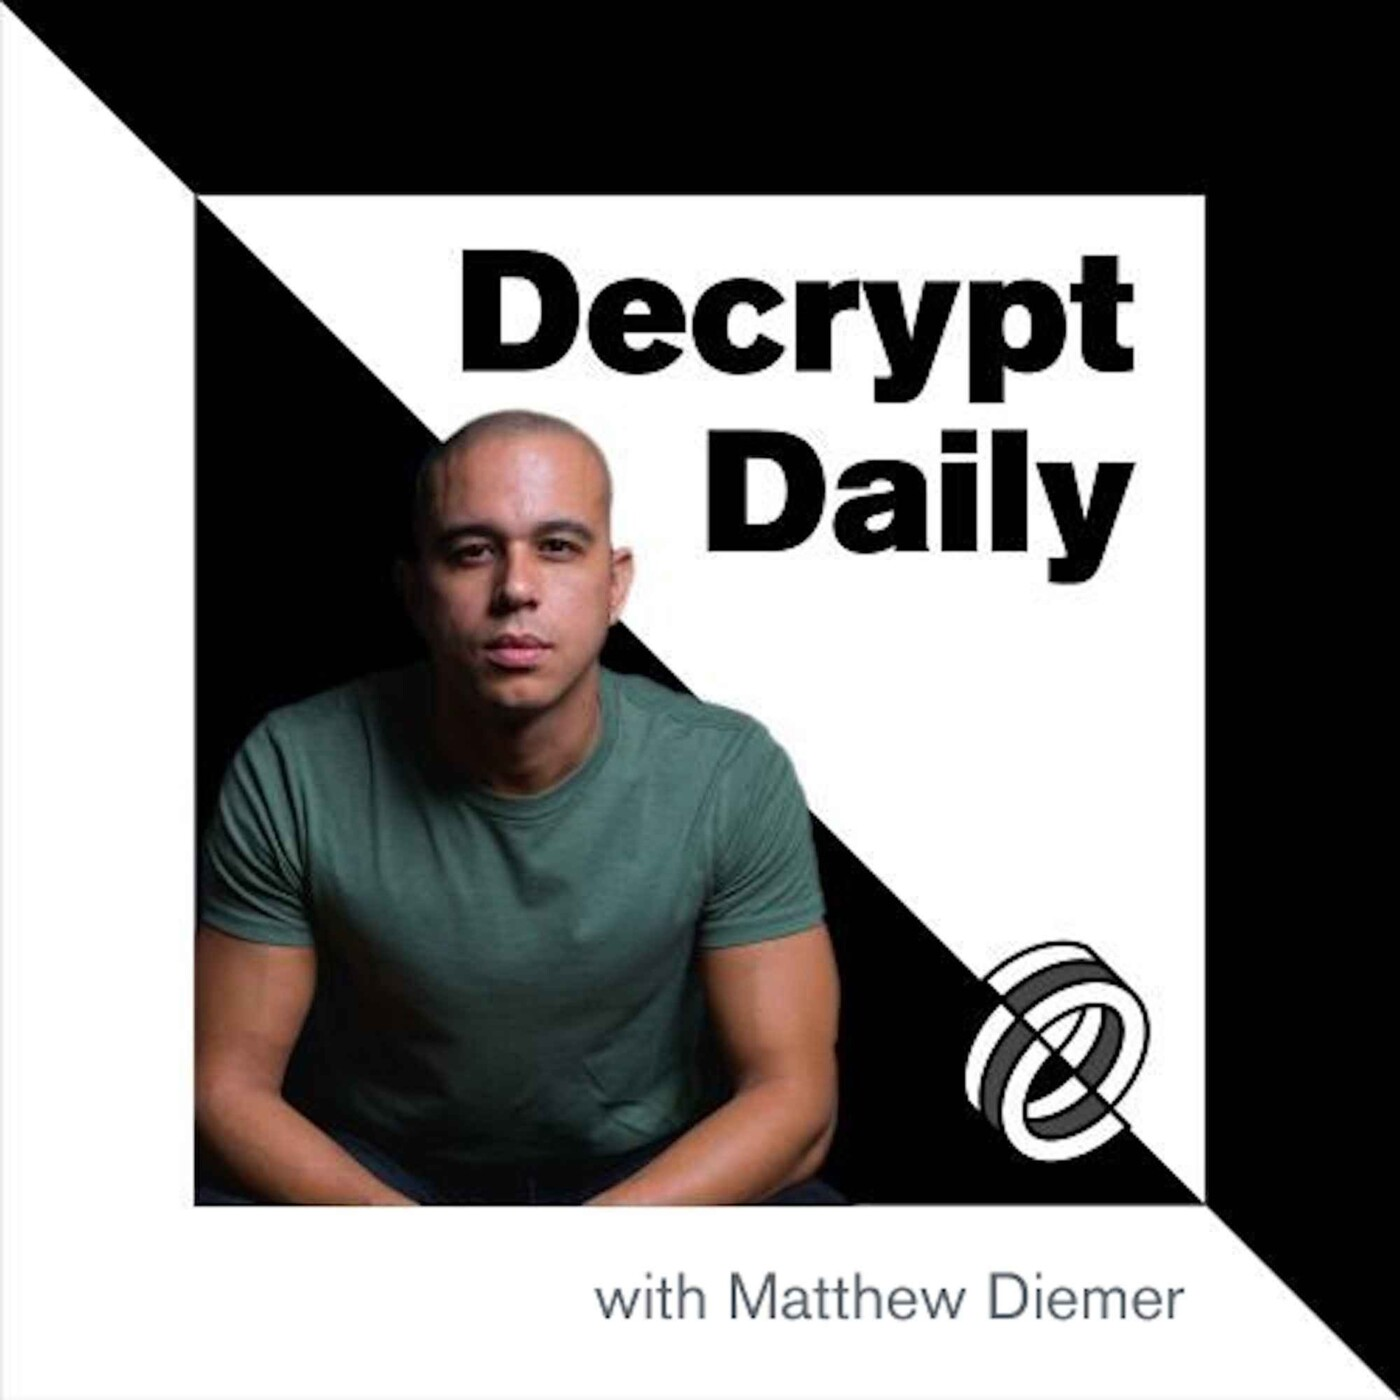 Oct 19: Jameson Lopp on CEX's, BITMEX, DEXs, Bitcoin Taproot, When ETH 2.0, Elections